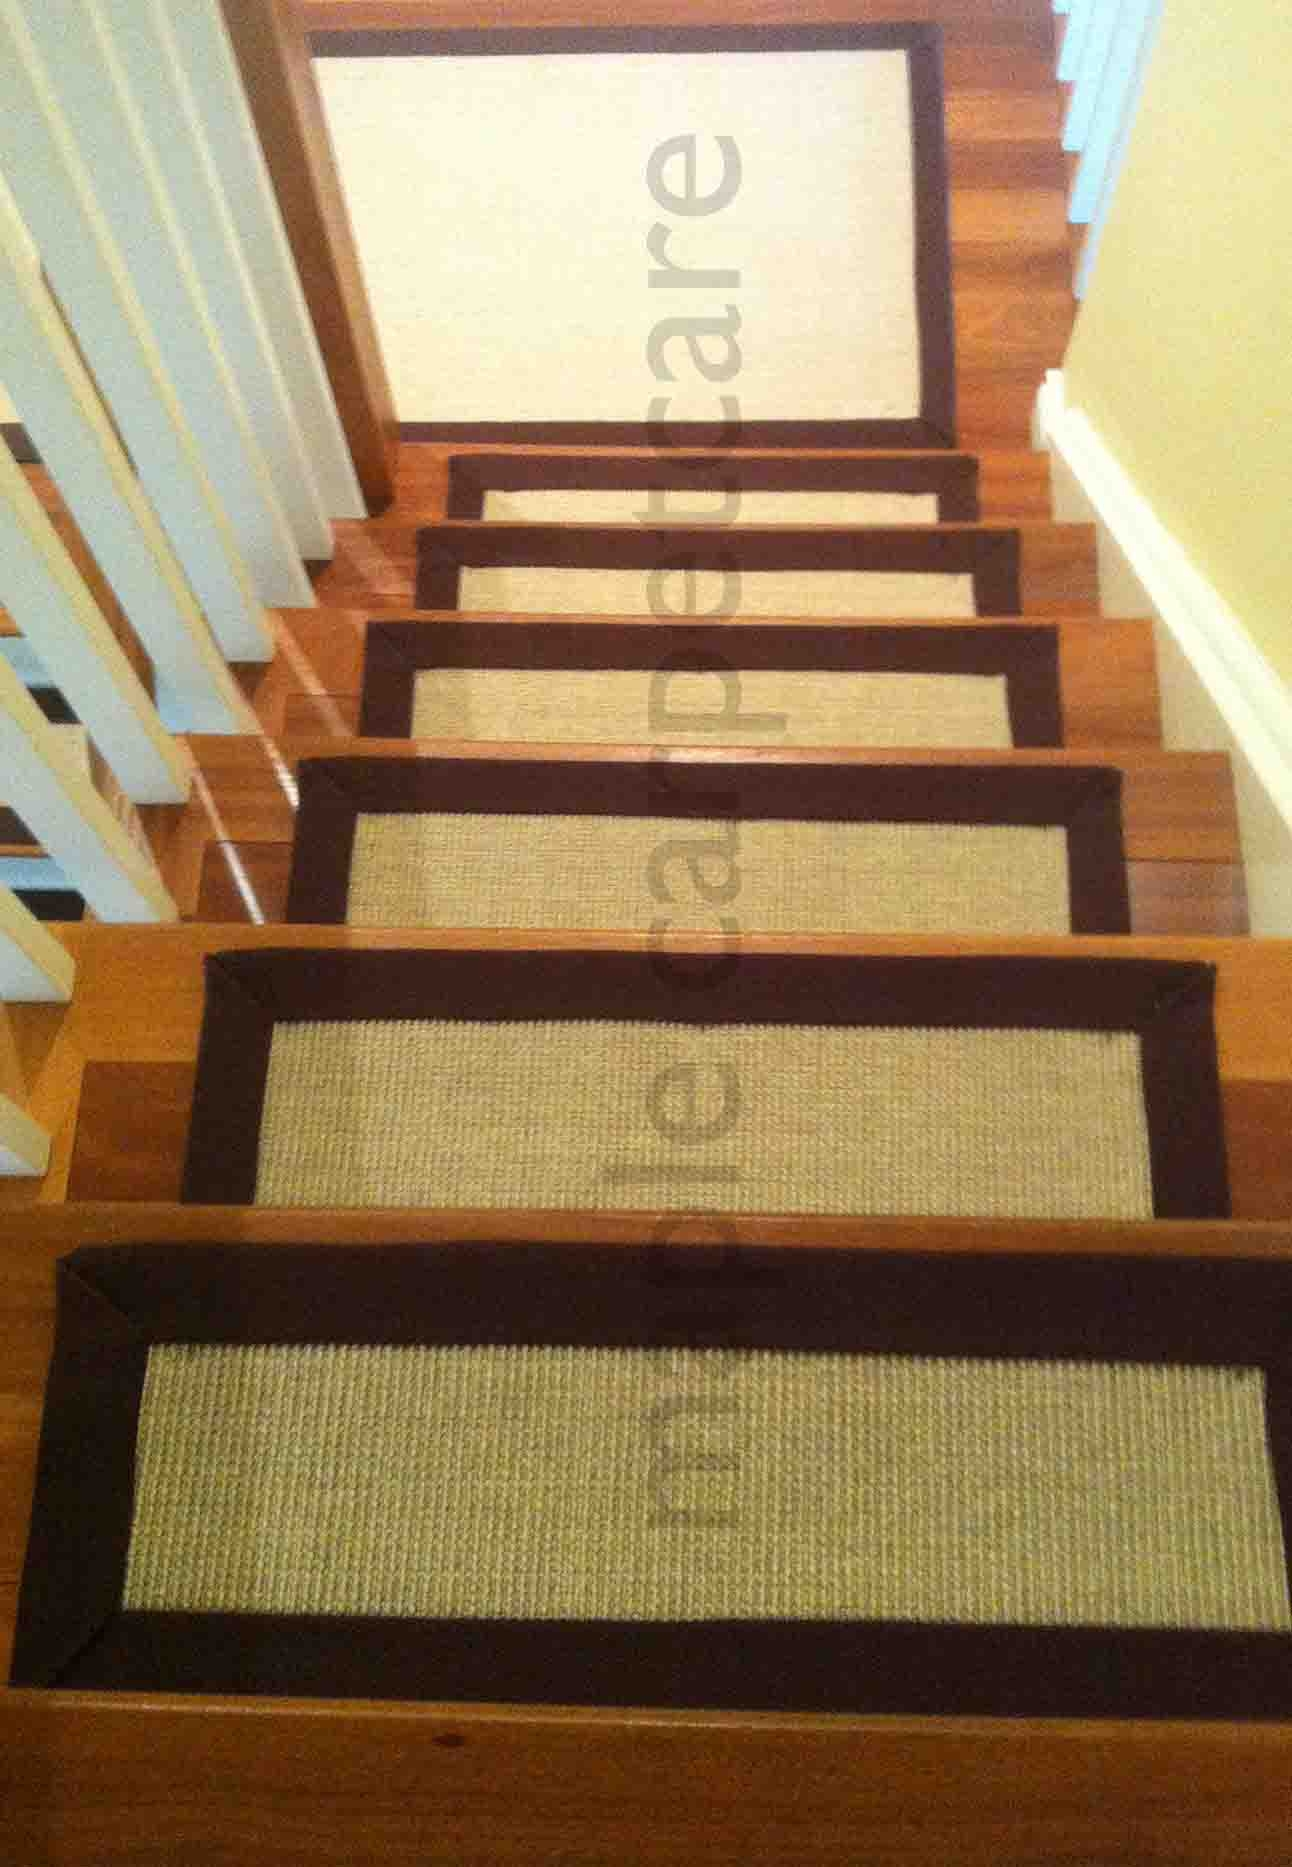 Stair Rugs Rugs For Runners On Stairs Sisal Carpet Laid As Runner In Stair Treads On Carpet (View 10 of 15)